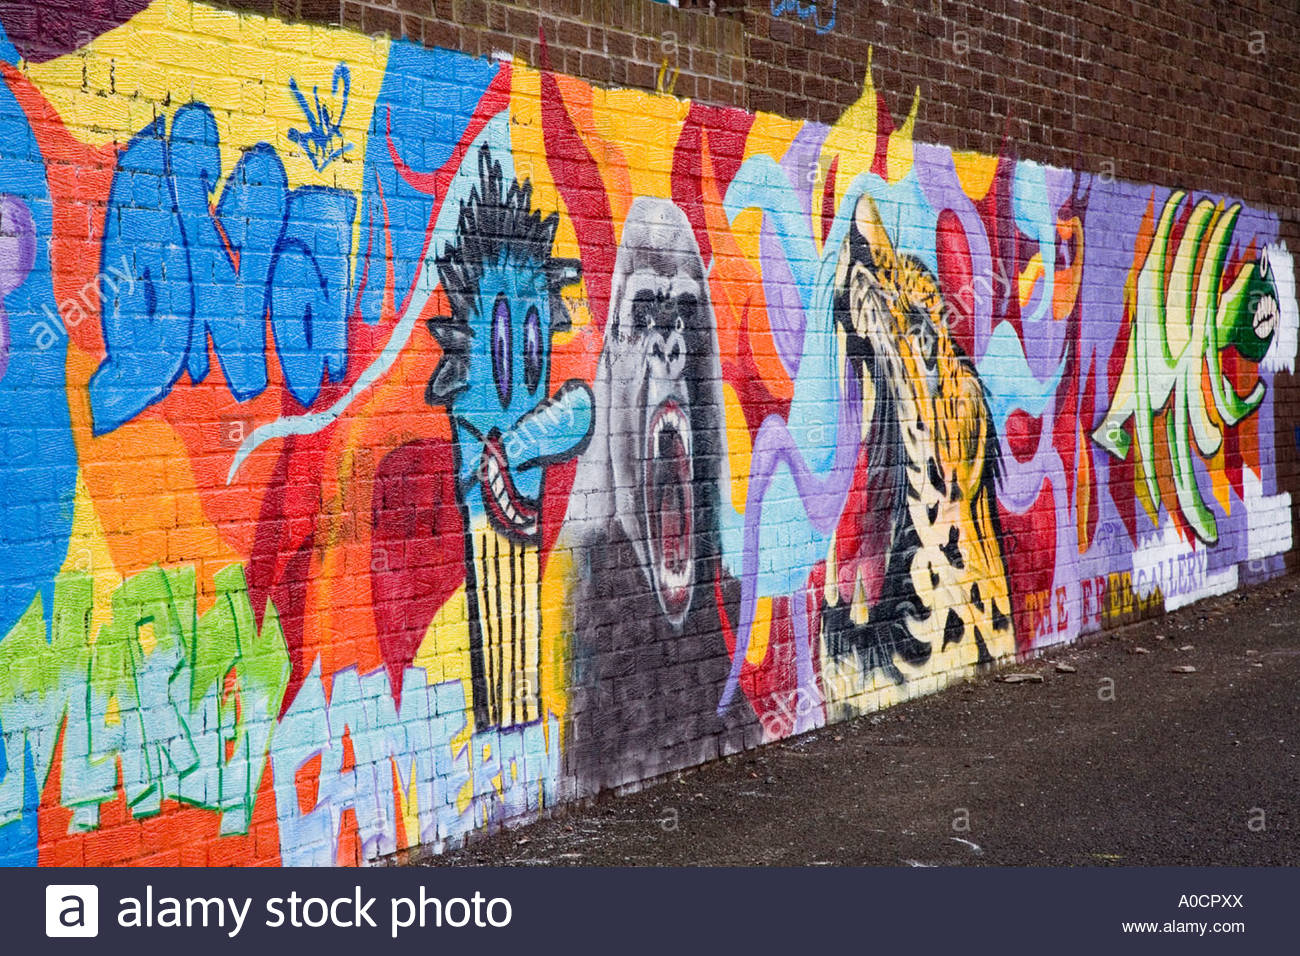 Graffiti wall painting - Stock Photo Wall Painting And Graffiti On School Playground In Dundee City Uk